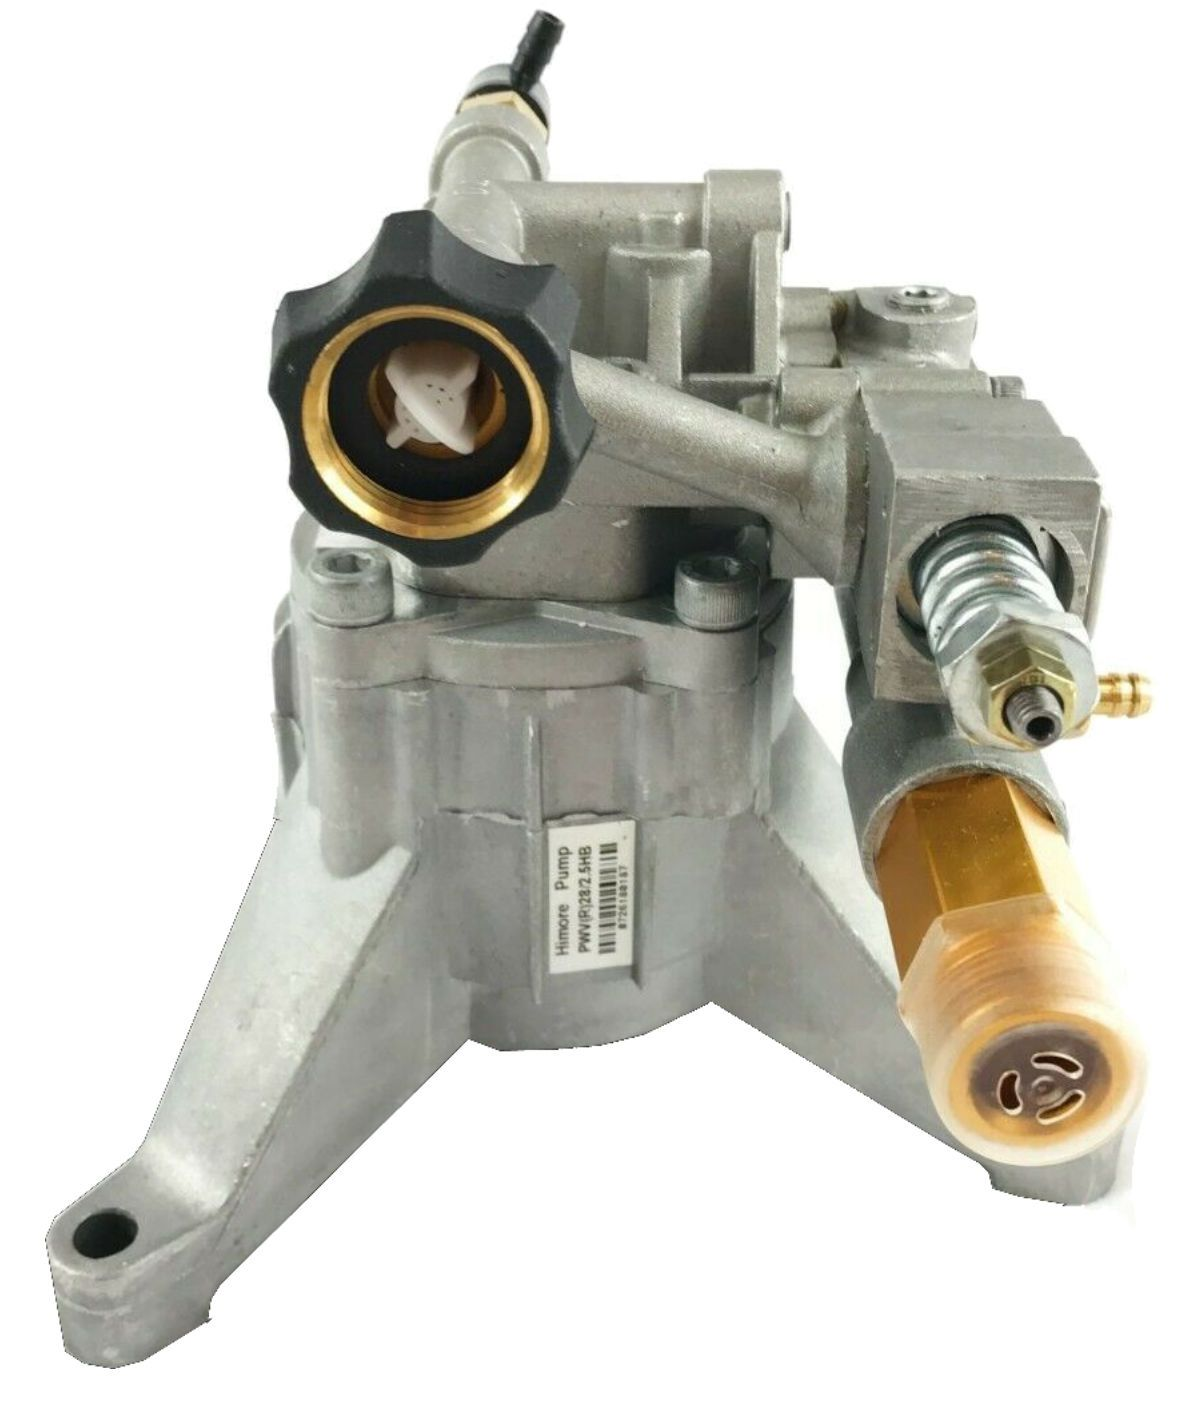 2700 PSI PRESSURE WASHER WATER PUMP Briggs & Stratton 580.672200 - AE-Power